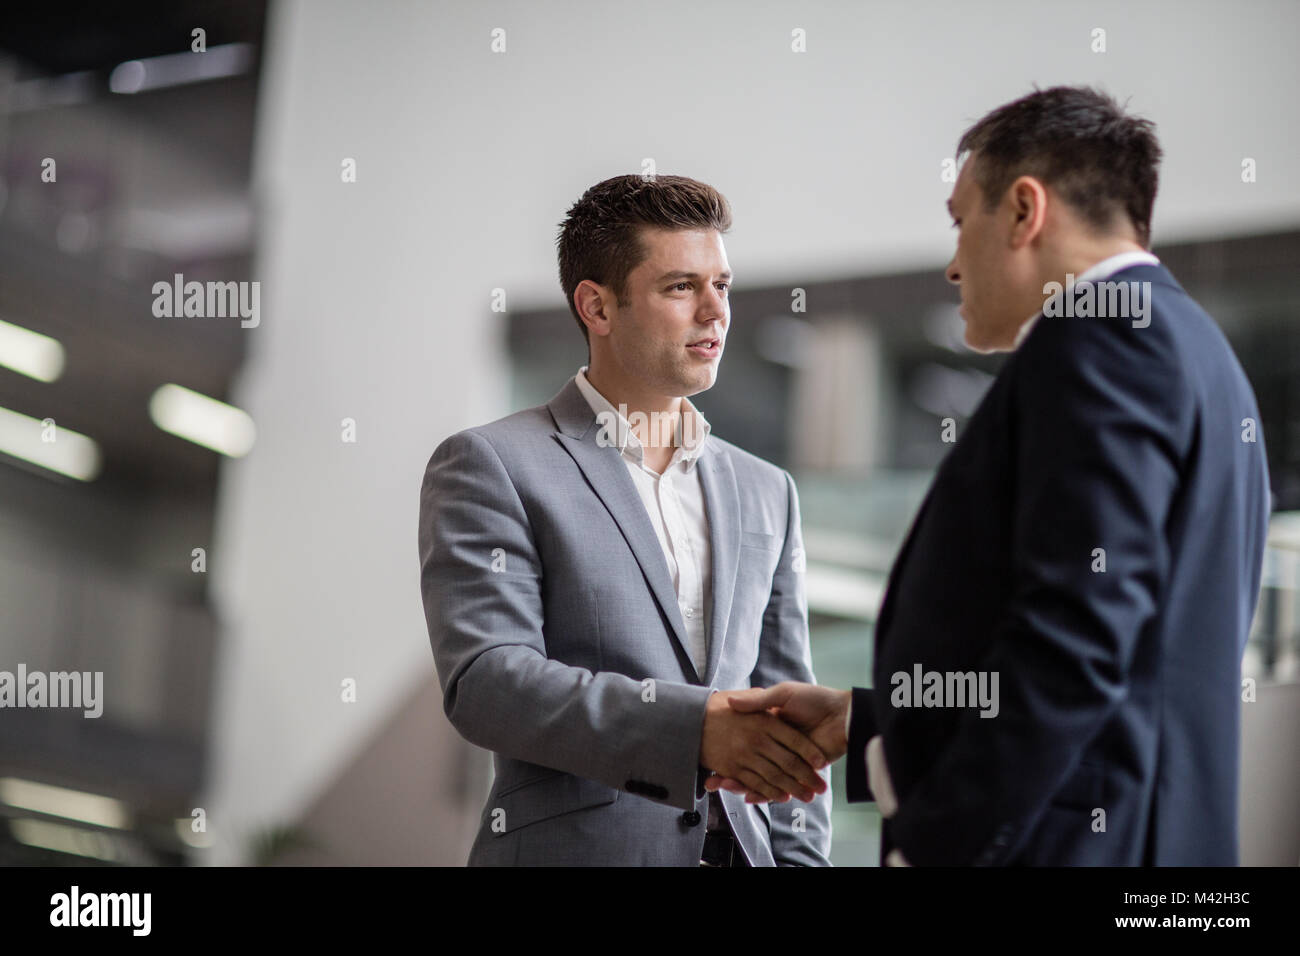 Businessmen shaking hands in a corporate office - Stock Image